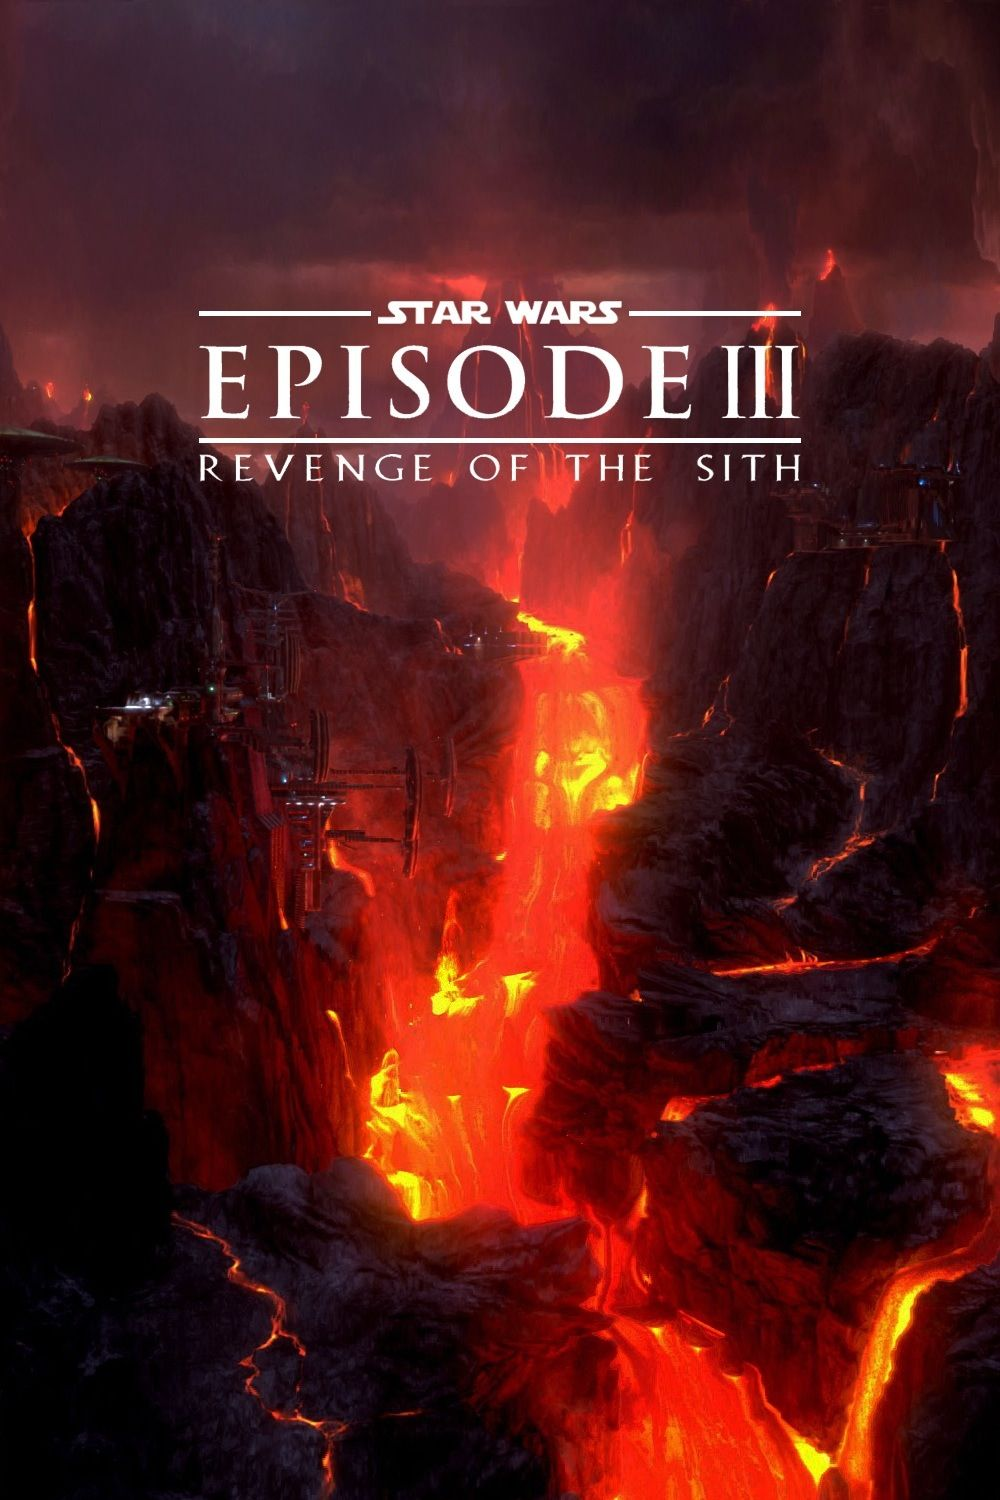 Star Wars Episode Iii Revenge Of The Sith 2005 Star Wars Movies Posters Star Wars Painting Star Wars Poster